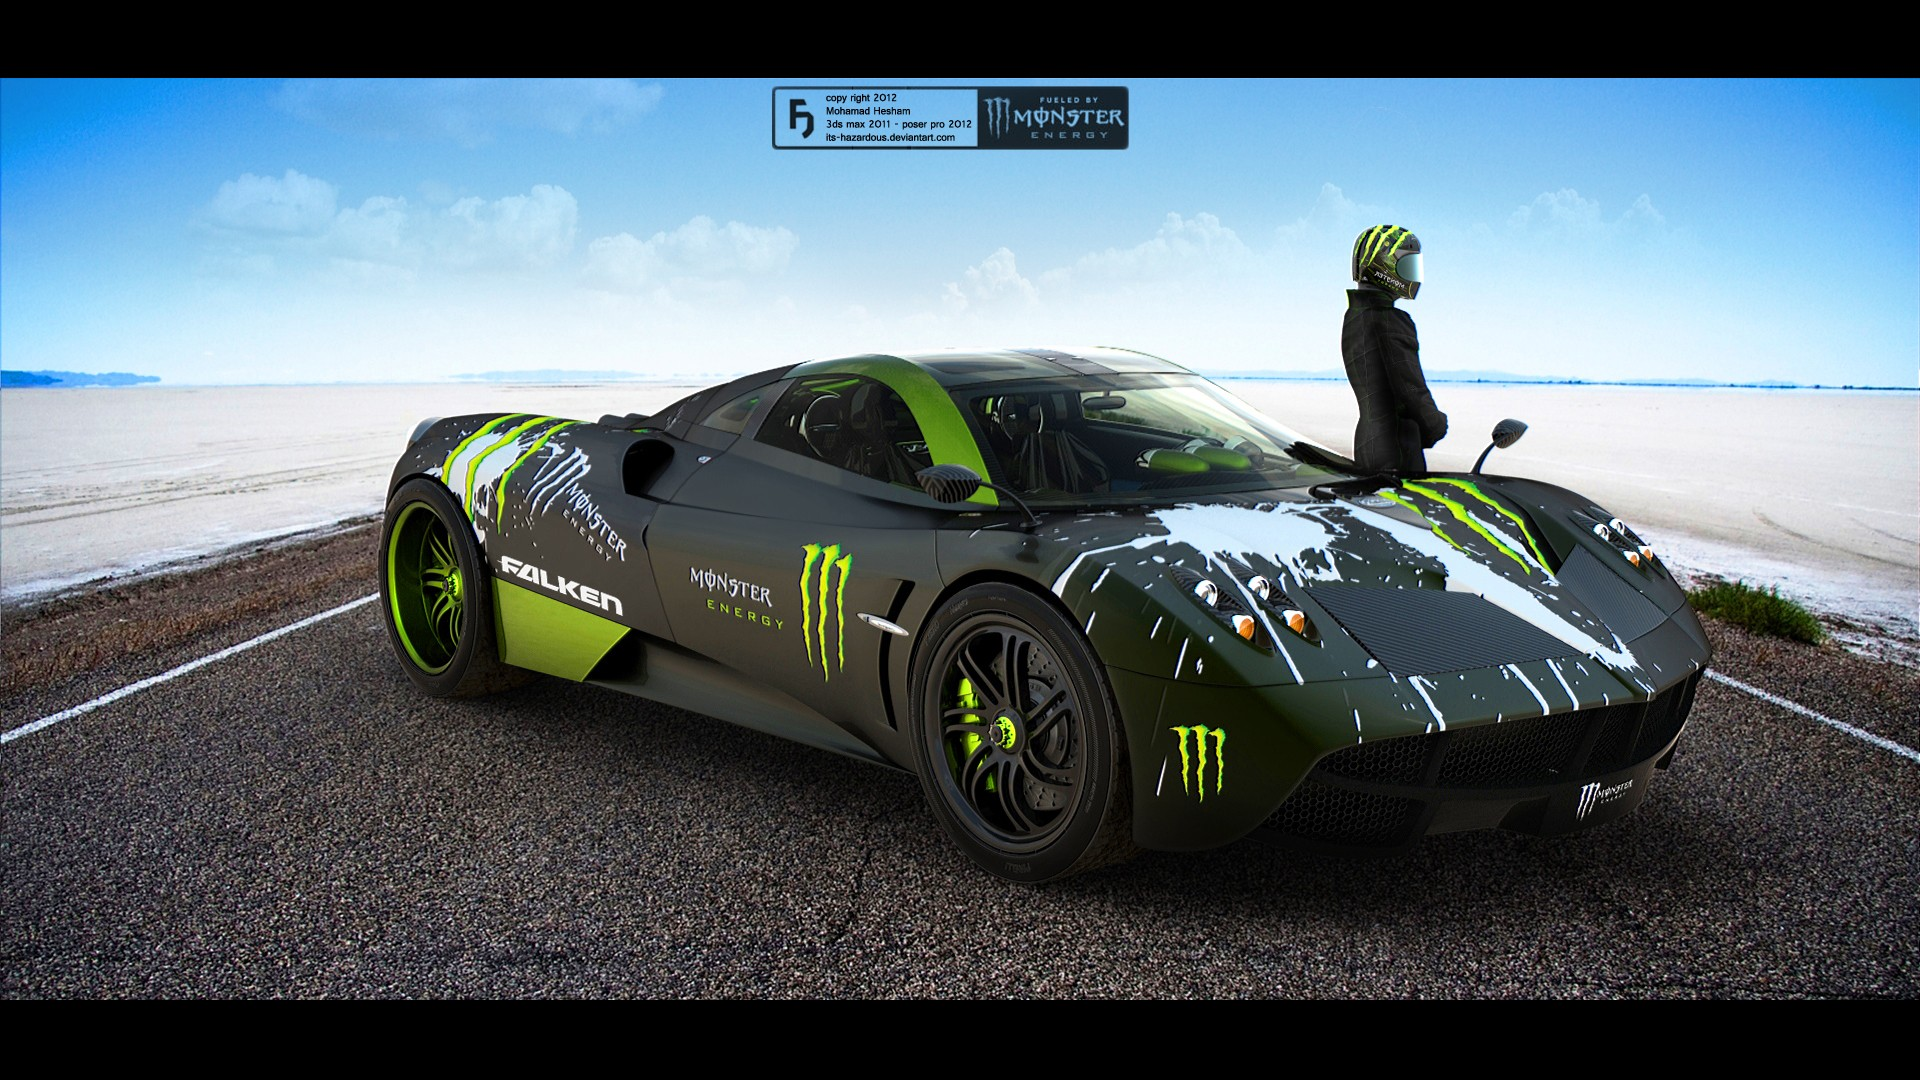 F1 Car Monster Energy Wallpaper Hd: [49+] Monster Energy Wallpaper Car On WallpaperSafari